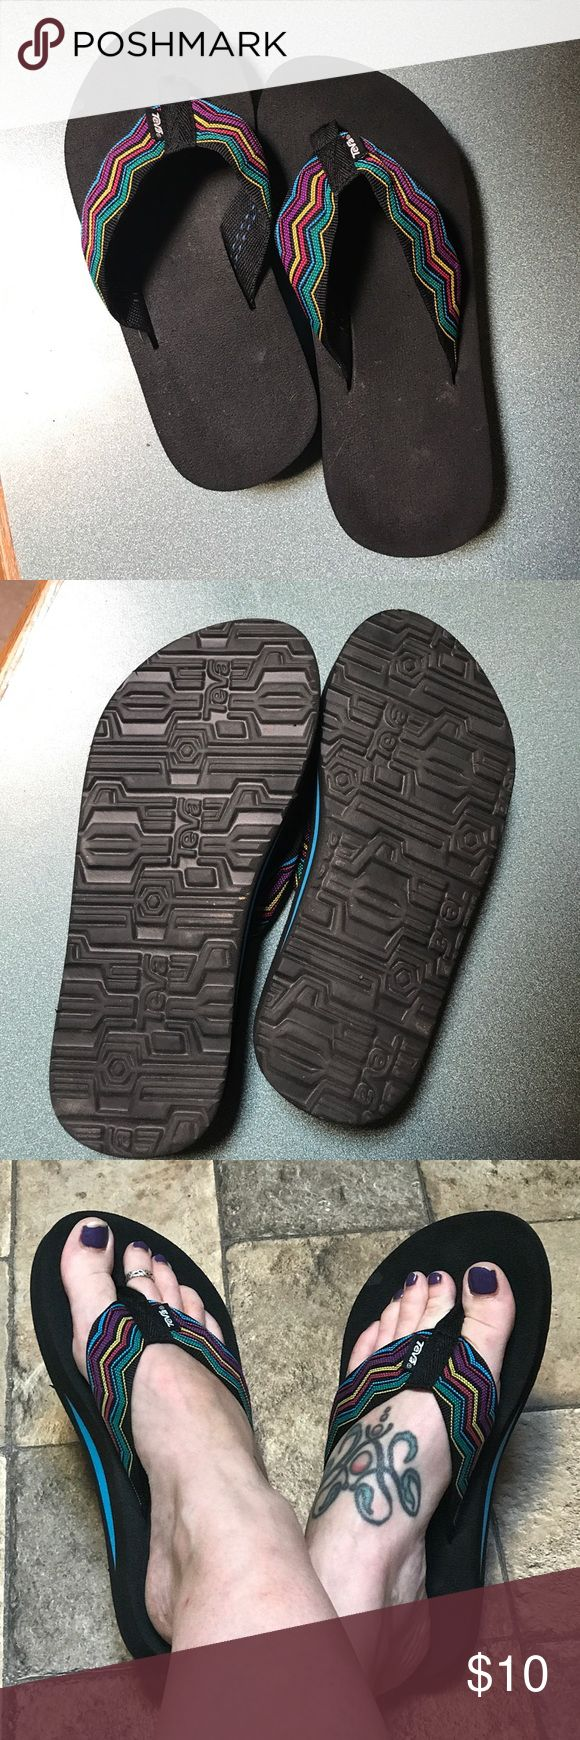 Teva flip flops size 6 Size 6 Teva flip flops❤️ These have been worn only once - my mom bought these but couldn't wear them after she had foot surgery. Teva Shoes Sandals